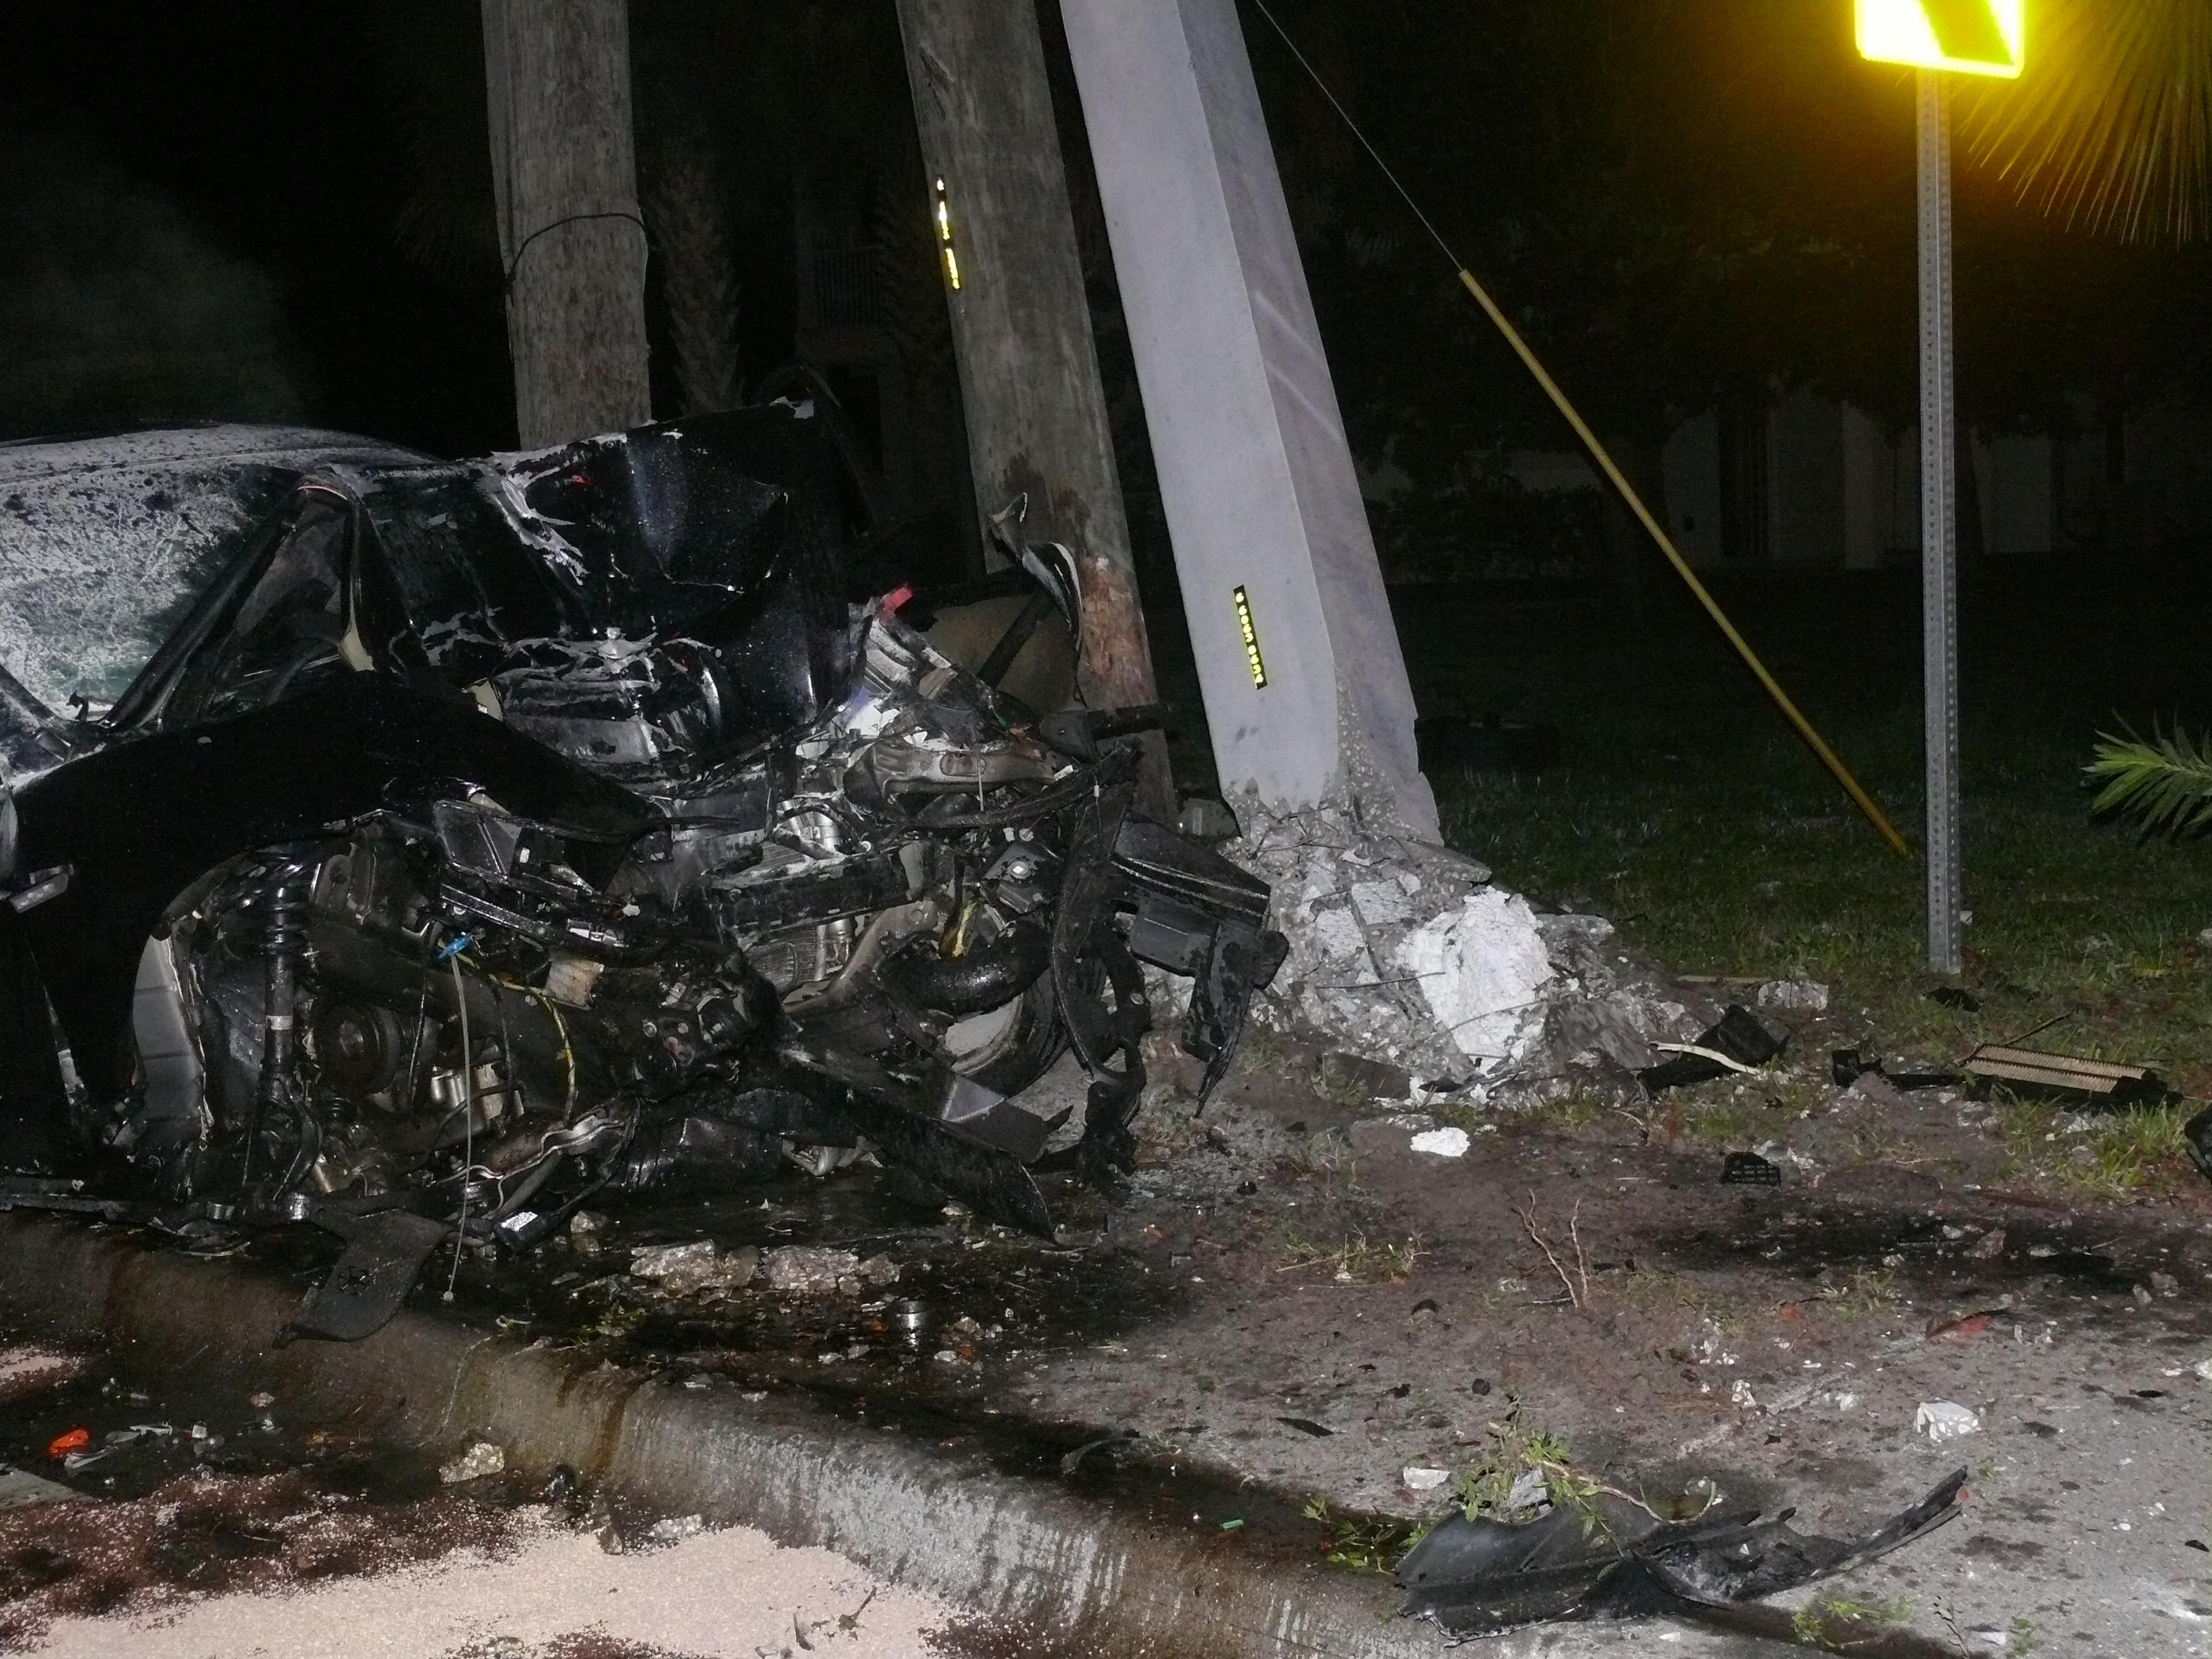 Man from Port St. Lucie killed in crash. (Port St. Lucie Police)